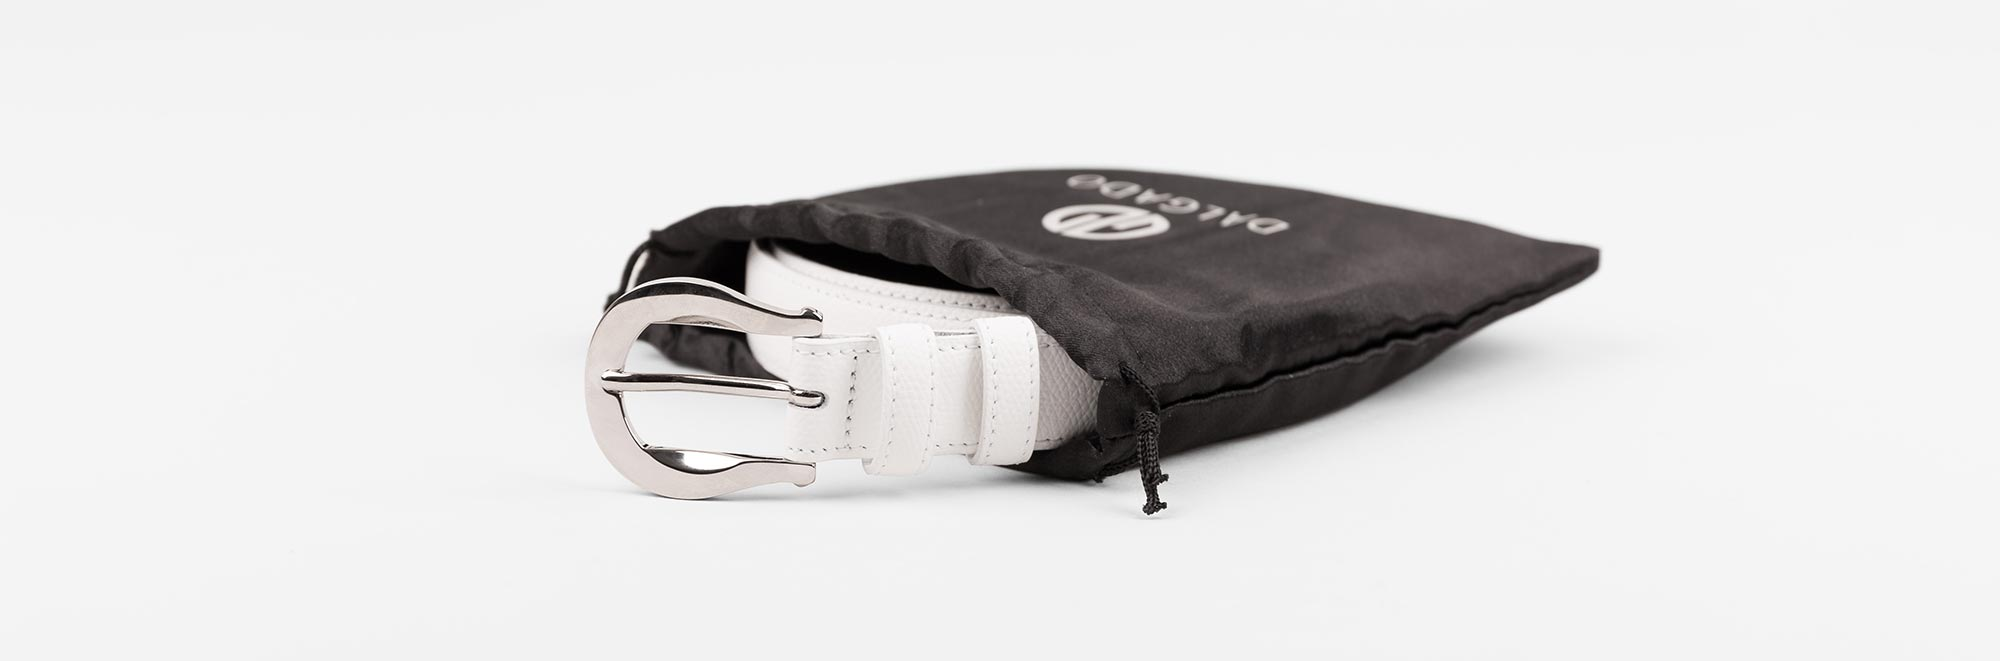 Palmelatto Leather Belt white and dust bag.